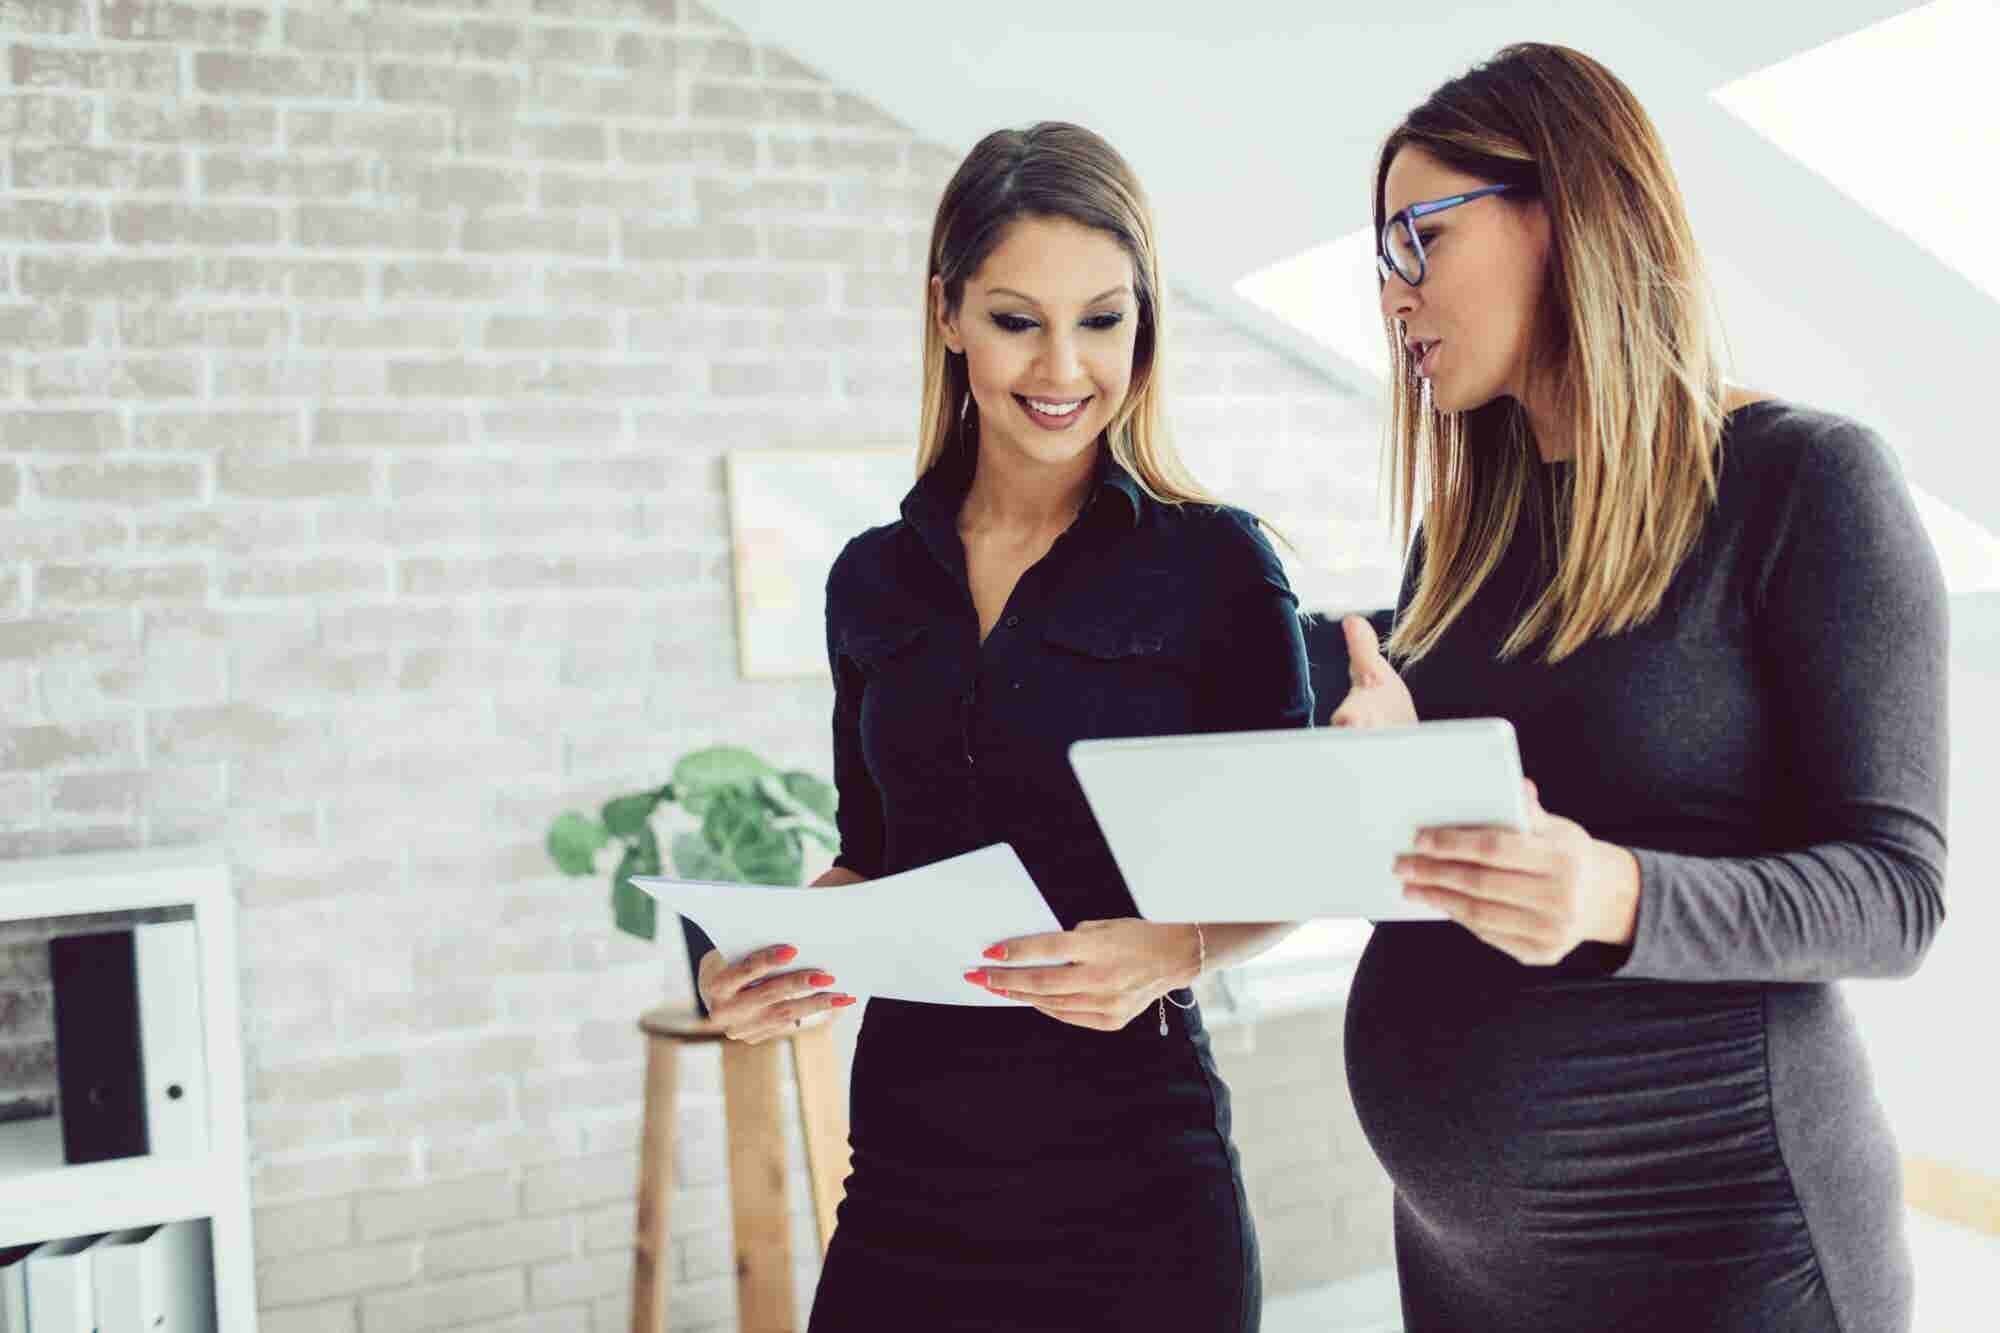 Fundraising While Pregnant: How to Raise $20 Million for Your Startup #LikeAGirl